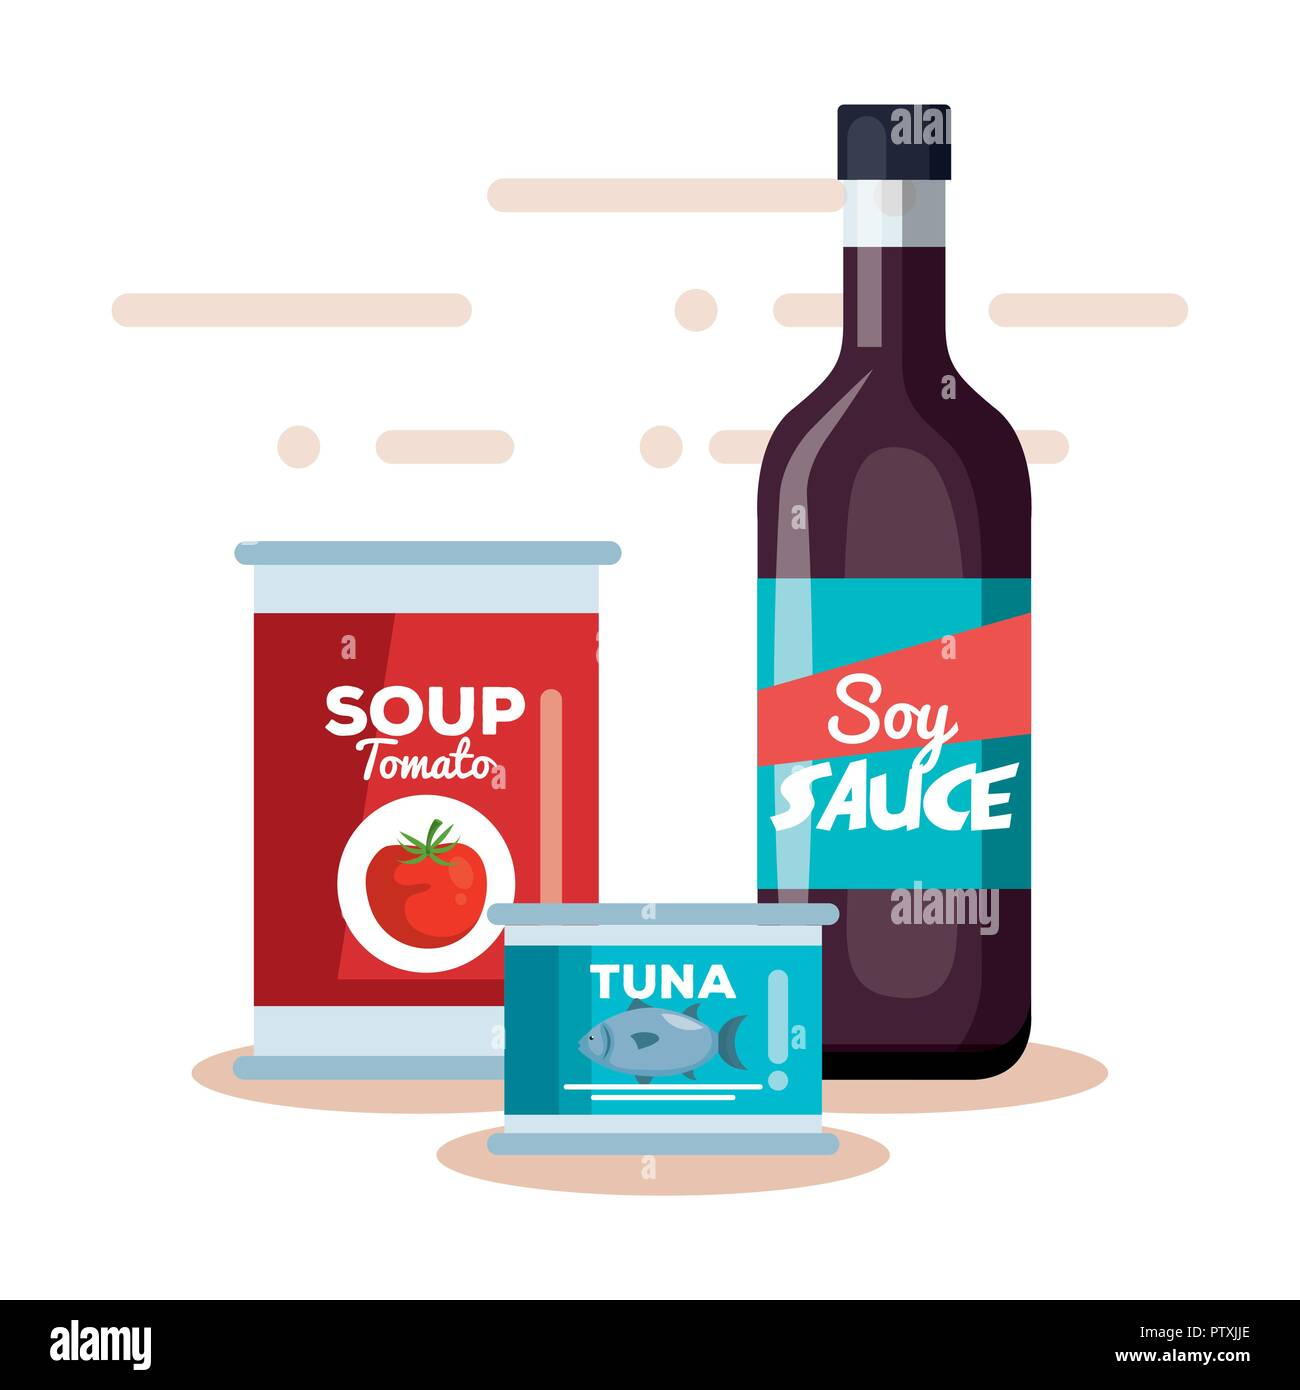 soy sauce with tomato soup and tuna can - Stock Image